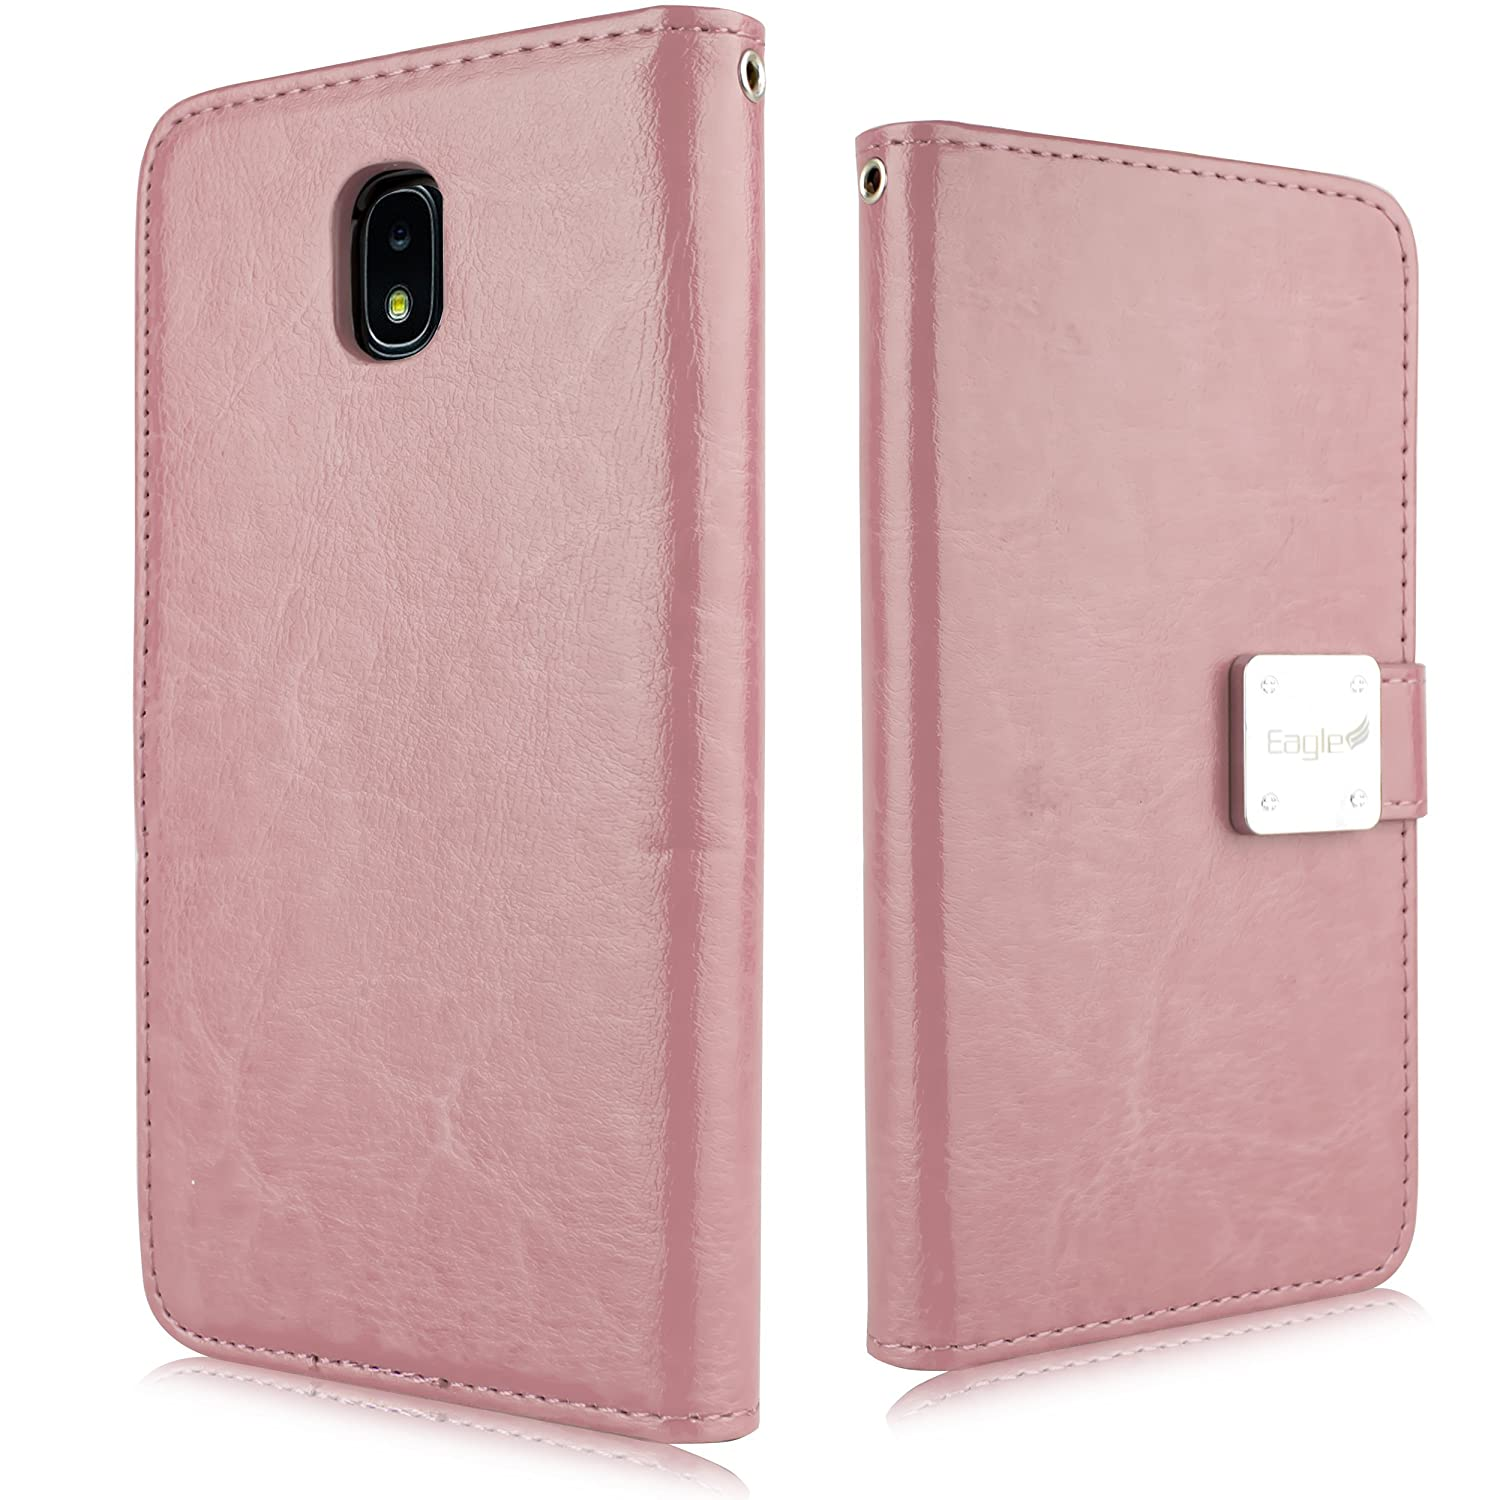 for Samsung Galaxy J7 2018 Refine, J7 Star, Crown, Aura, Aero, Eon, J7 Top (SM- J737) PU Leather 3 Credit Card Slot Detachable Magnetic TPU Case with Wallet [2 in 1 Pouch Cover] (Rose Gold)